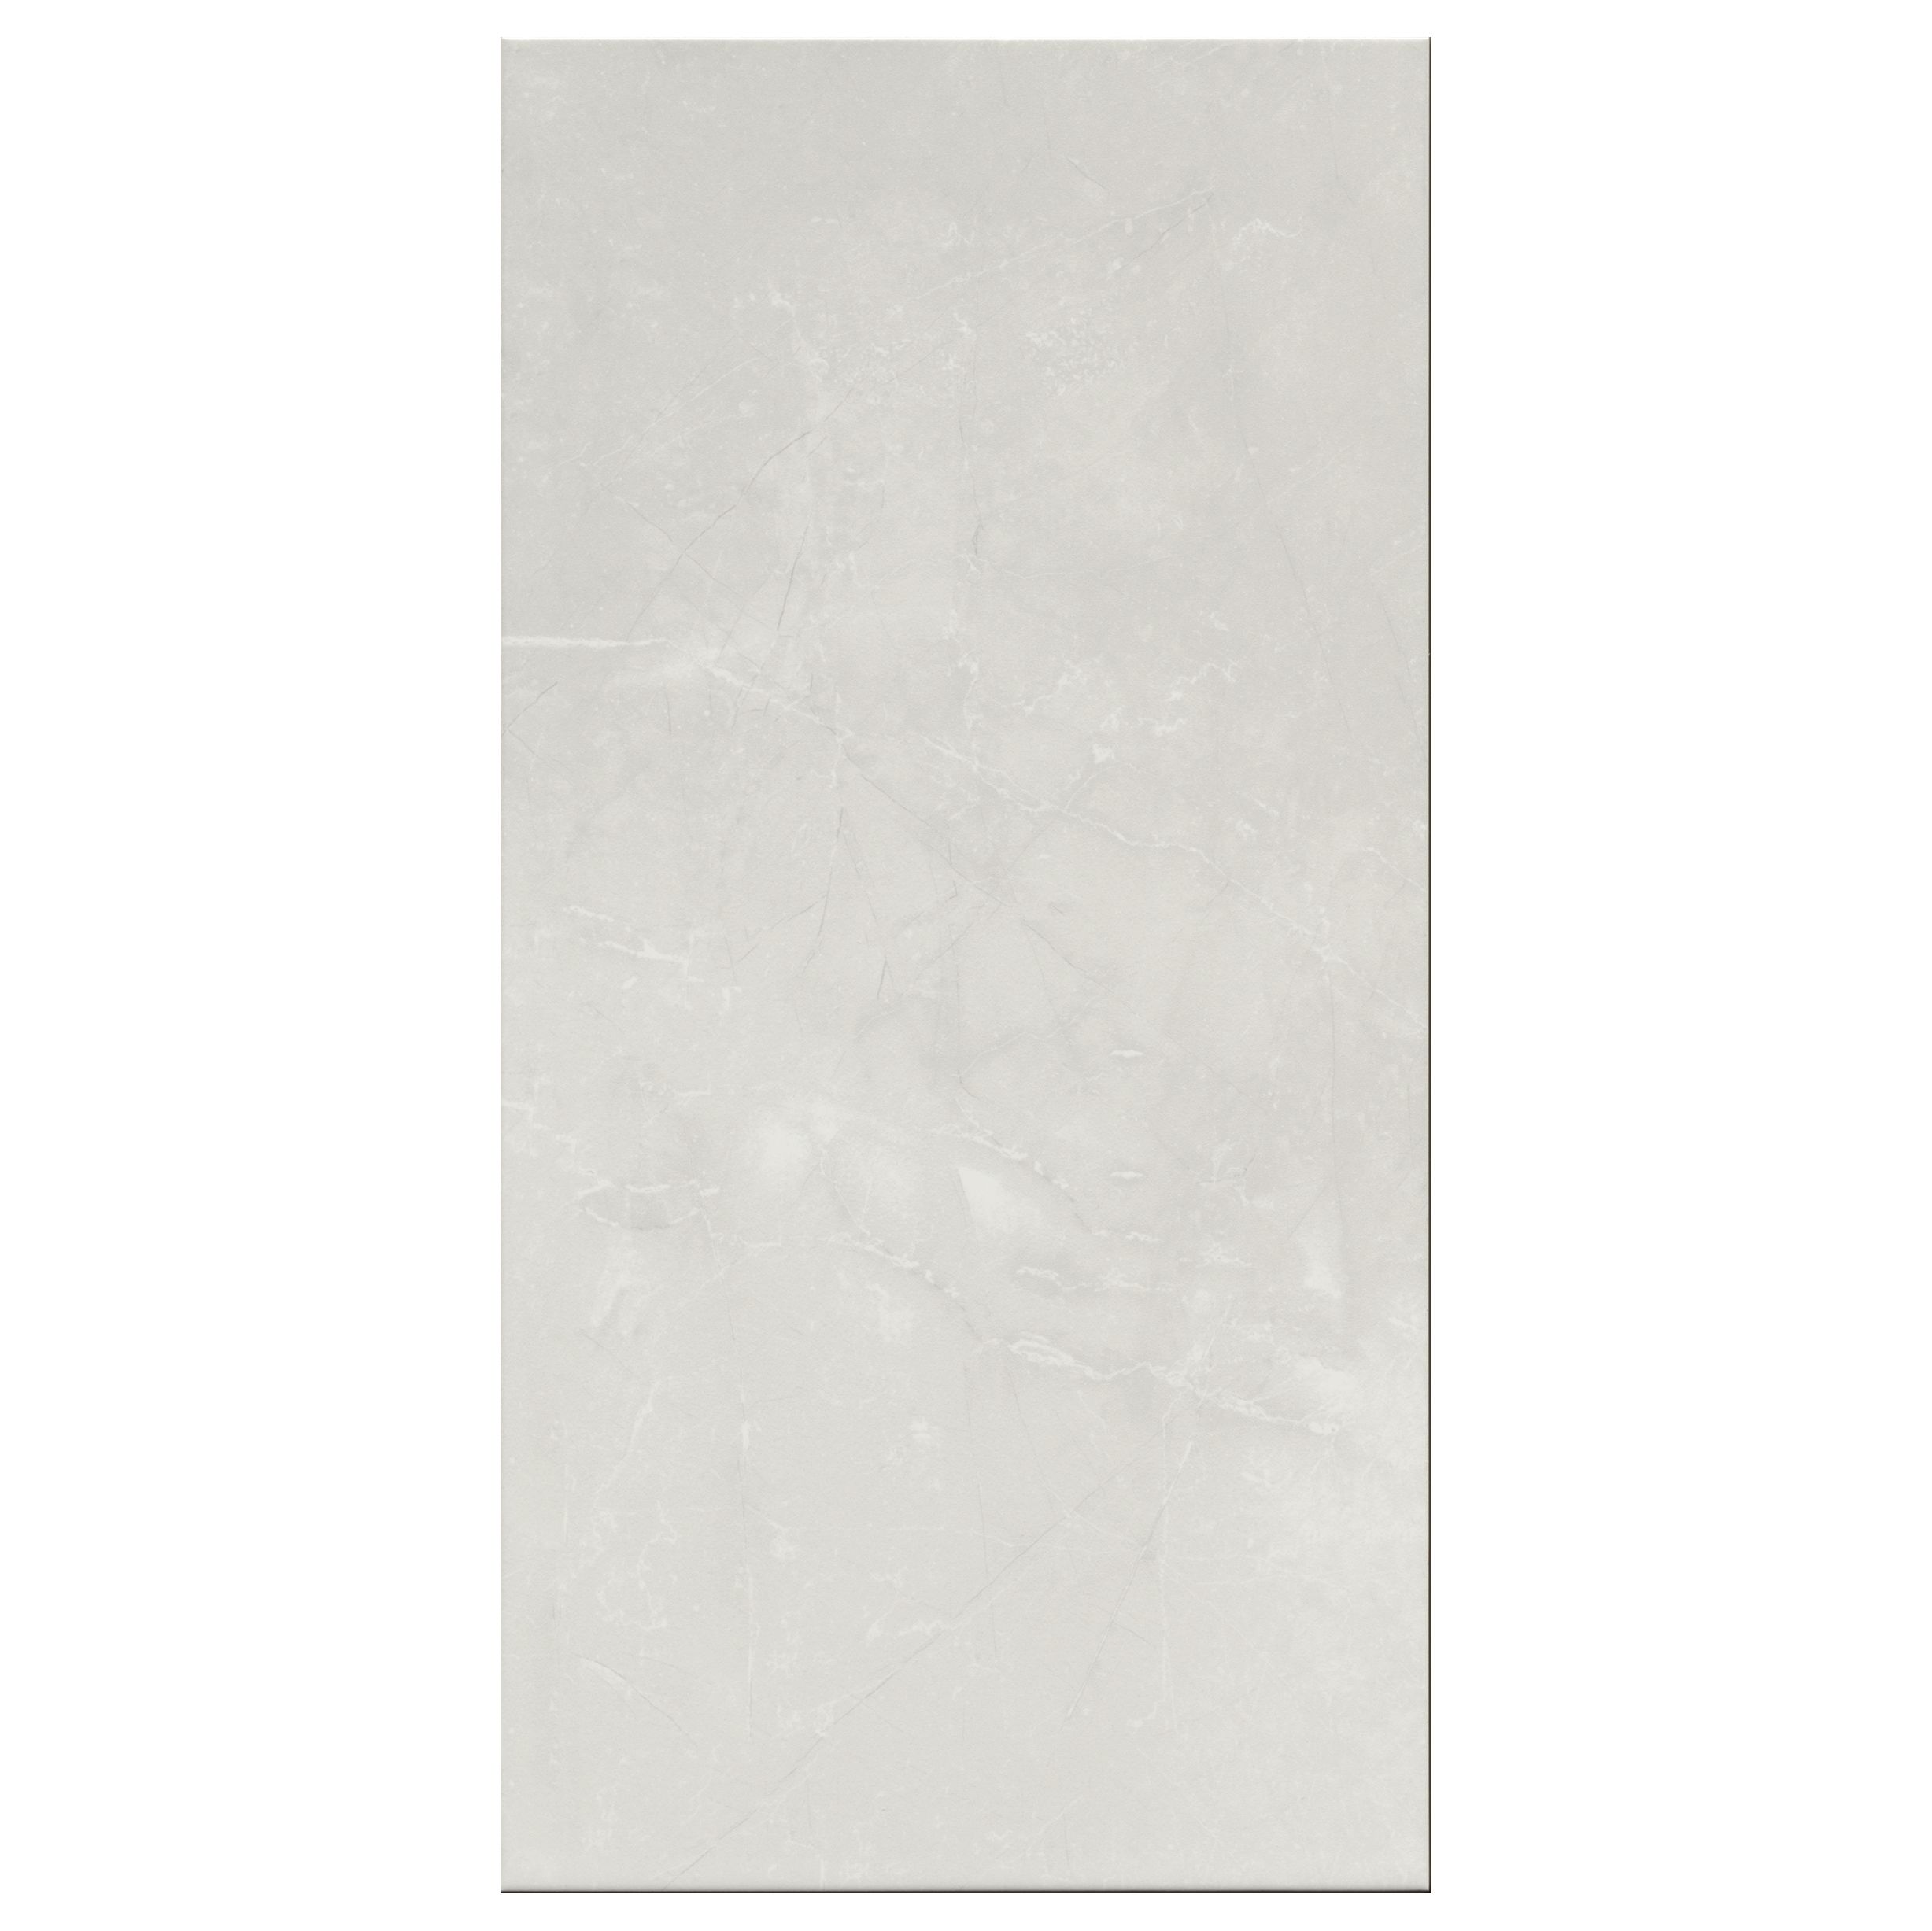 Perouso White Gloss Ceramic Wall Tile Pack Of 6 L 600mm: Memphis White Gloss Marble Effect Ceramic Wall Tile, Pack